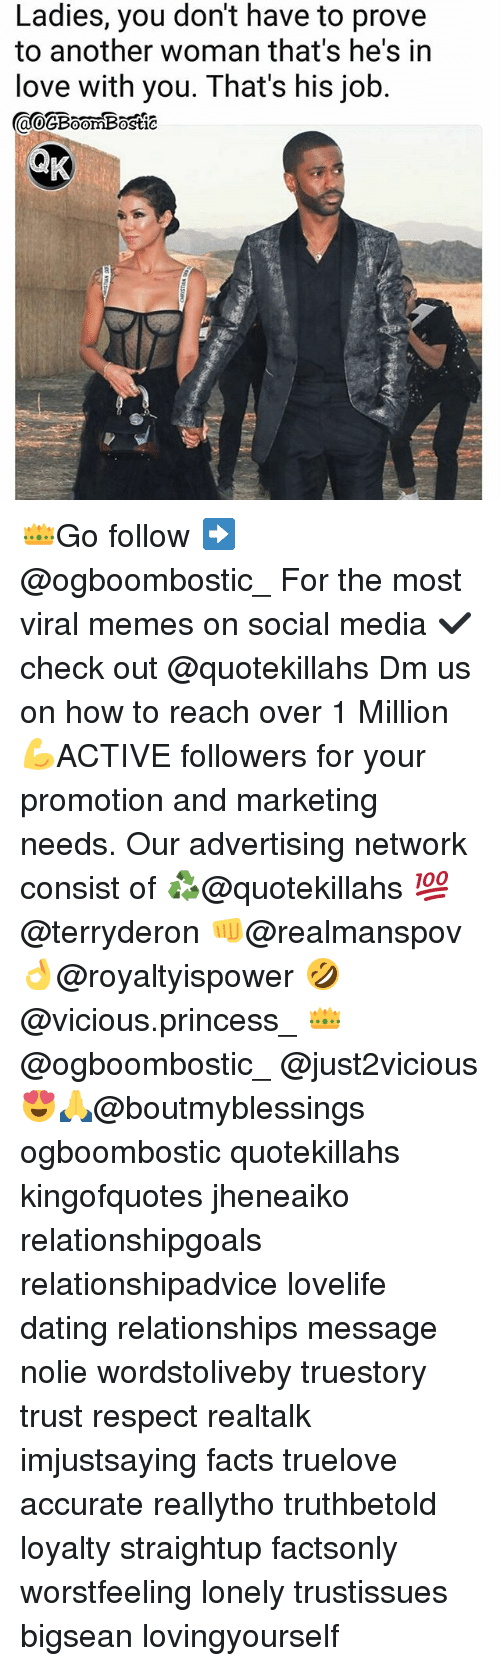 Bigsean: Ladies, you don't have to prove  to another woman that's he's irn  love with you. That's his job. 👑Go follow ➡@ogboombostic_ For the most viral memes on social media ✔check out @quotekillahs Dm us on how to reach over 1 Million💪ACTIVE followers for your promotion and marketing needs. Our advertising network consist of ♻@quotekillahs 💯@terryderon 👊@realmanspov 👌@royaltyispower 🤣@vicious.princess_ 👑@ogboombostic_ @just2vicious😍🙏@boutmyblessings ogboombostic quotekillahs kingofquotes jheneaiko relationshipgoals relationshipadvice lovelife dating relationships message nolie wordstoliveby truestory trust respect realtalk imjustsaying facts truelove accurate reallytho truthbetold loyalty straightup factsonly worstfeeling lonely trustissues bigsean lovingyourself